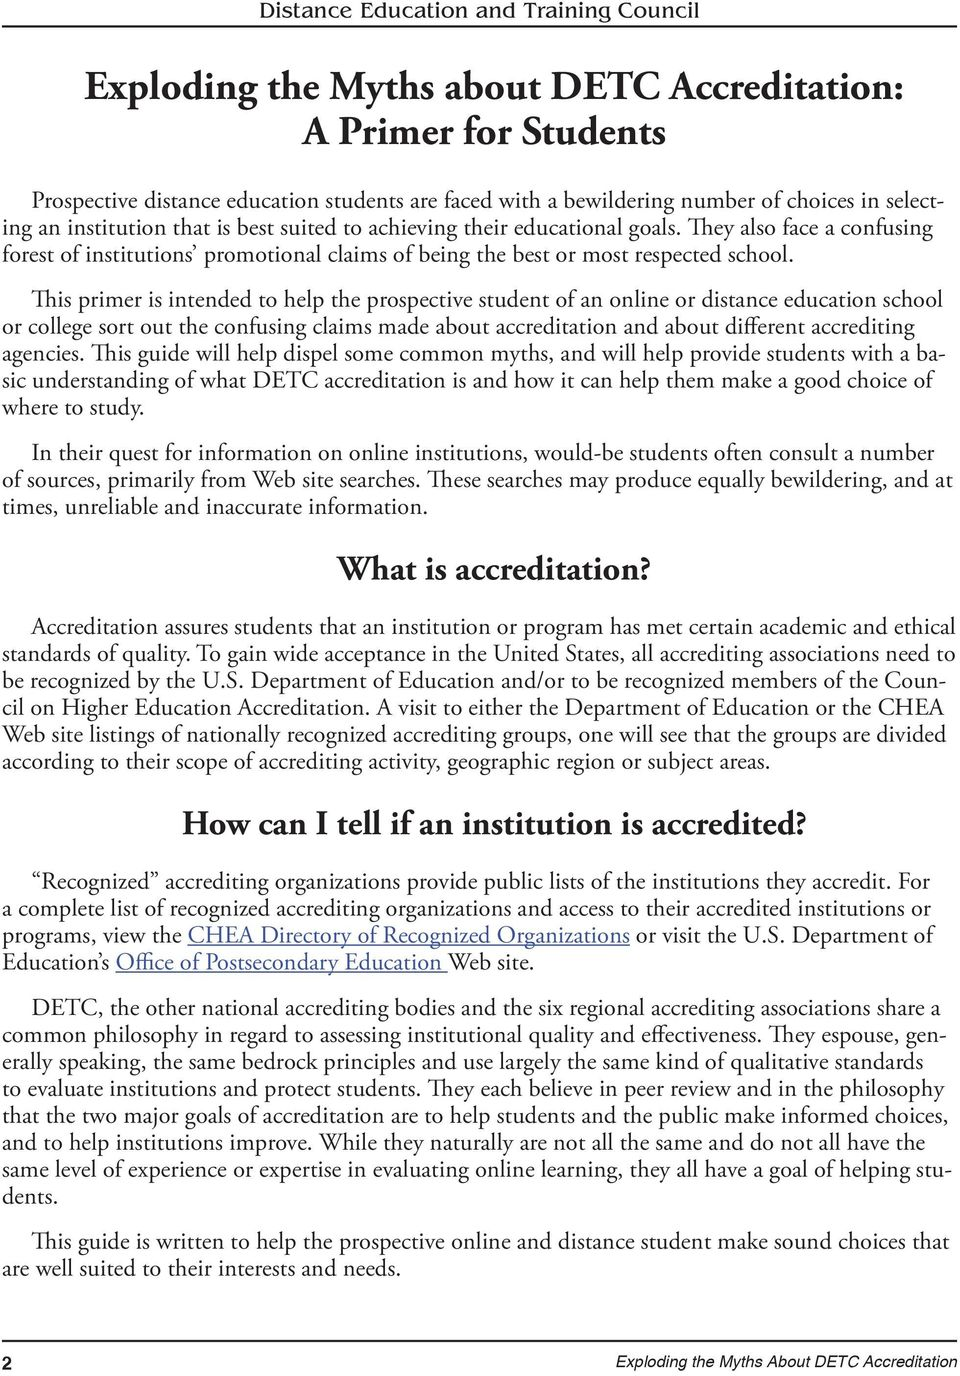 This primer is intended to hep the prospective student of an onine or distance education schoo or coege sort out the confusing caims made about accreditation and about different accrediting agencies.